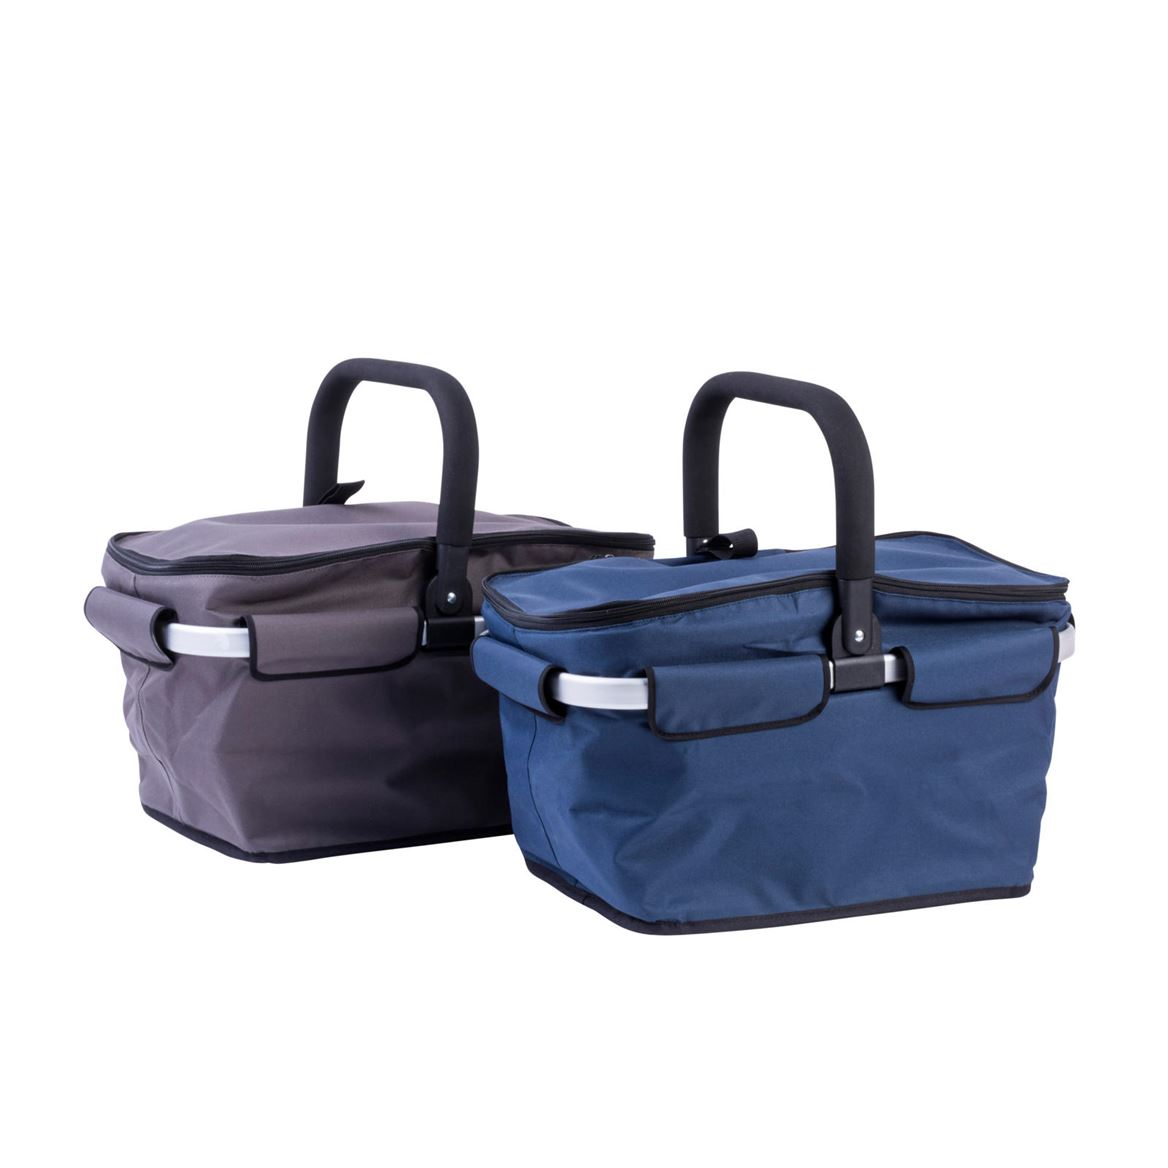 INFINITY Panier shopping isotherme 2 couleurs gris, bleu H 24 x Larg. 48 x P 28 cm_infinity-panier-shopping-isotherme-2-couleurs-gris,-bleu-h-24-x-larg--48-x-p-28-cm